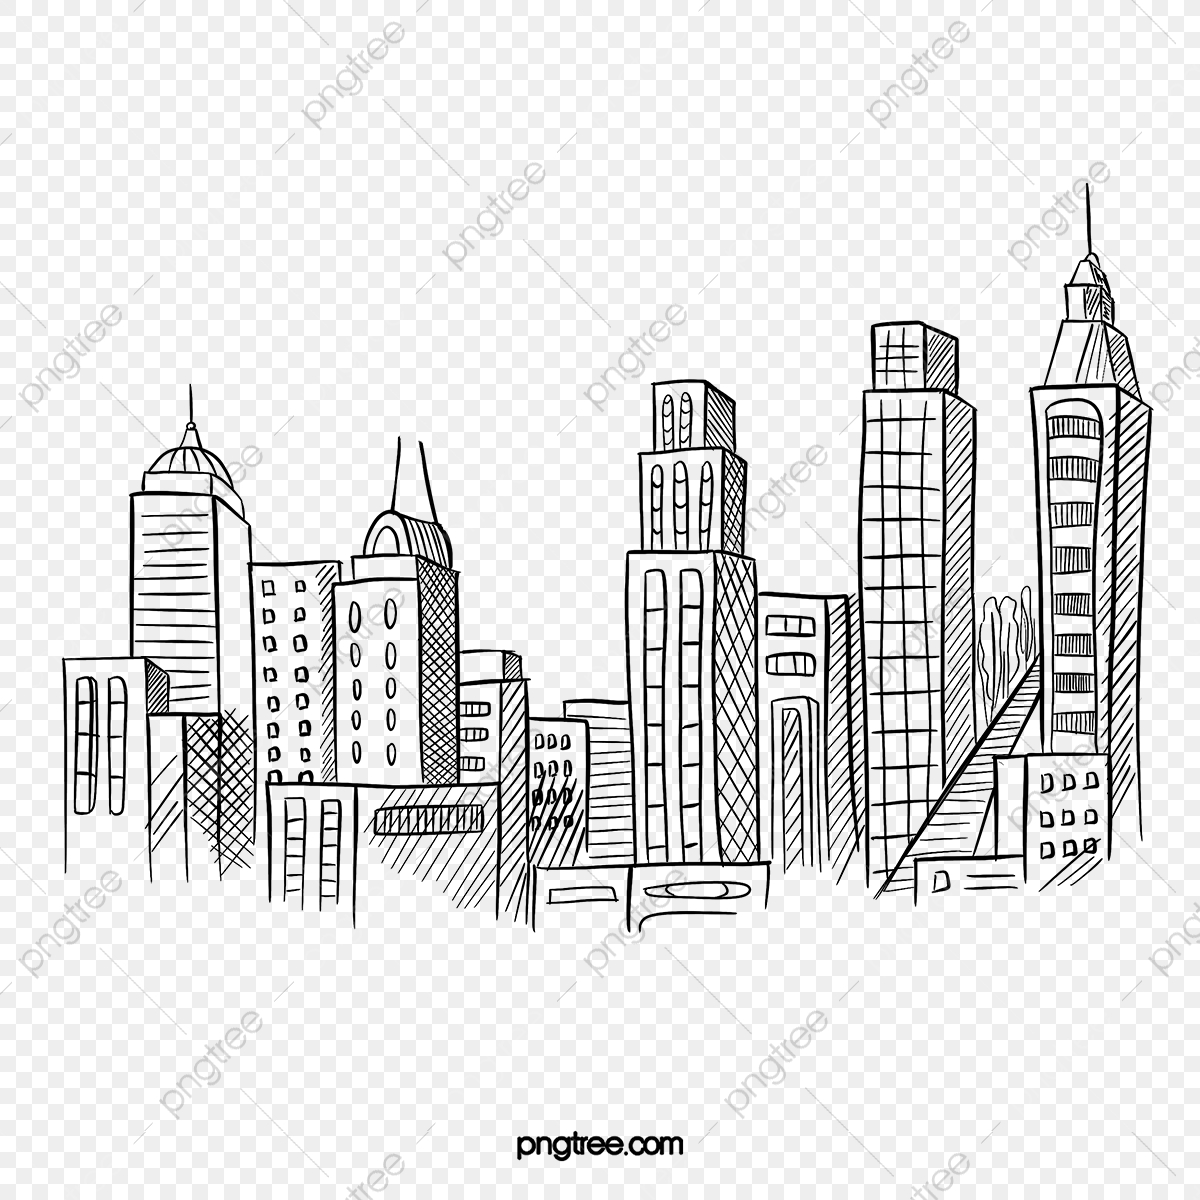 architectural sketch vector illustration material sketch vector building sketch png transparent clipart image and psd file for free download https pngtree com freepng architectural sketch vector illustration material 2145645 html